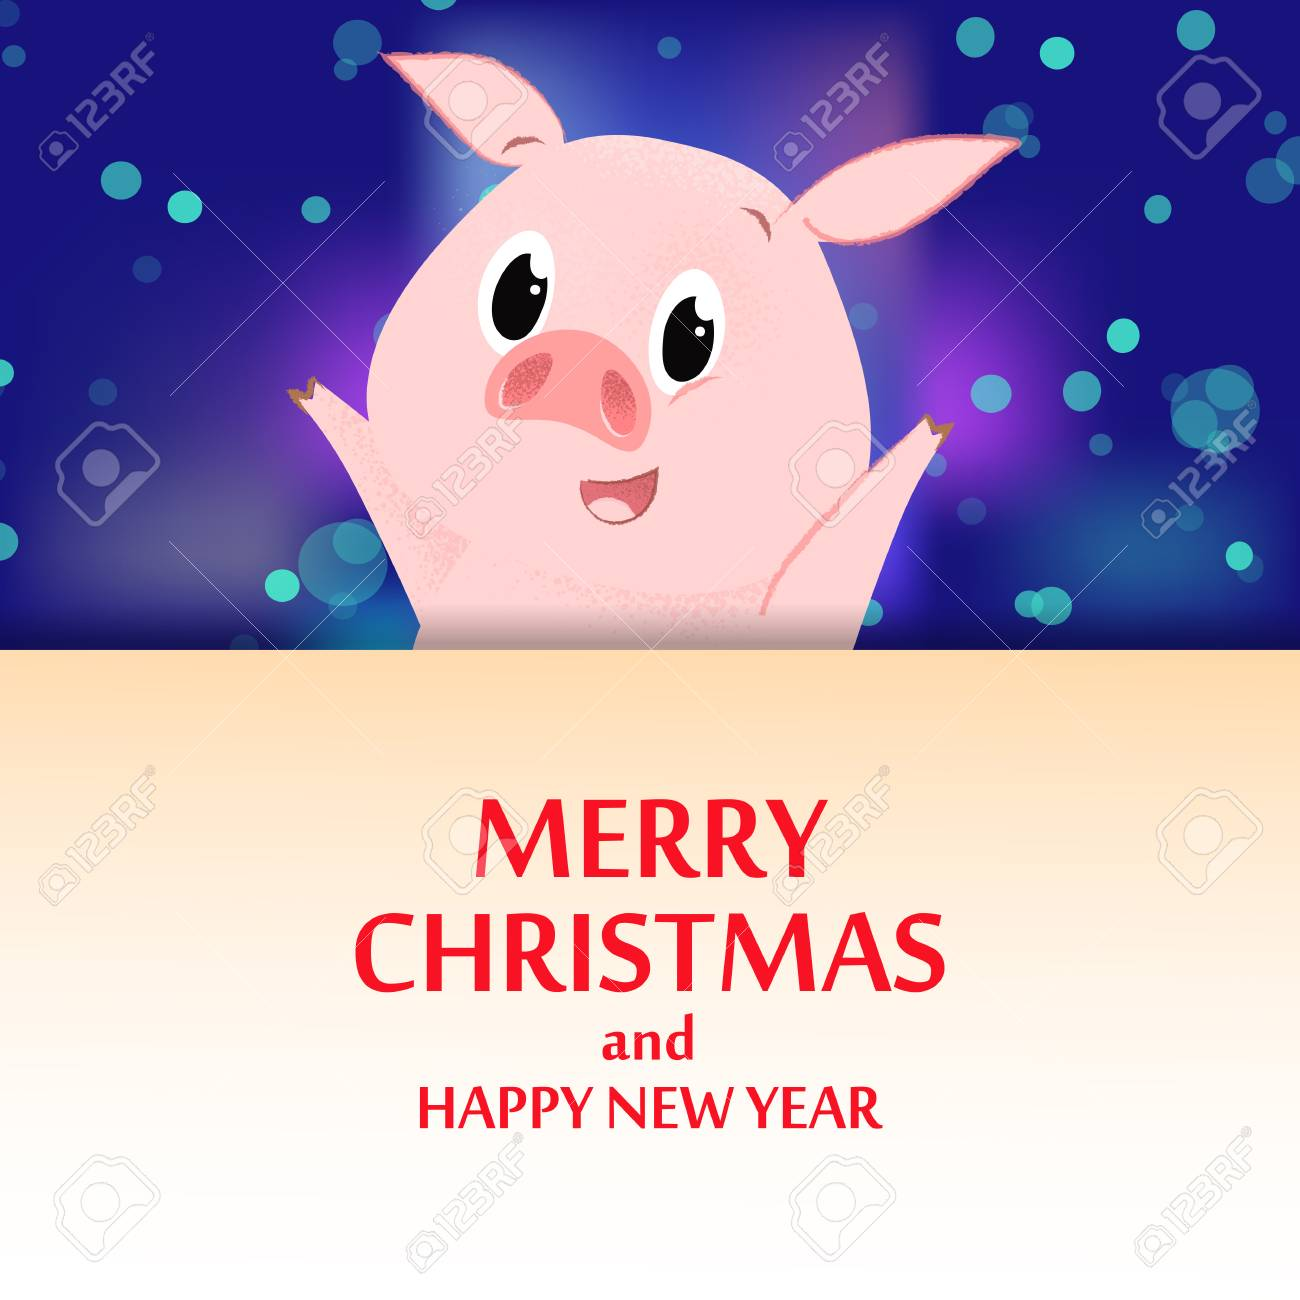 merry christmas and happy new year banner design cheerful cartoon pig over poster on blue